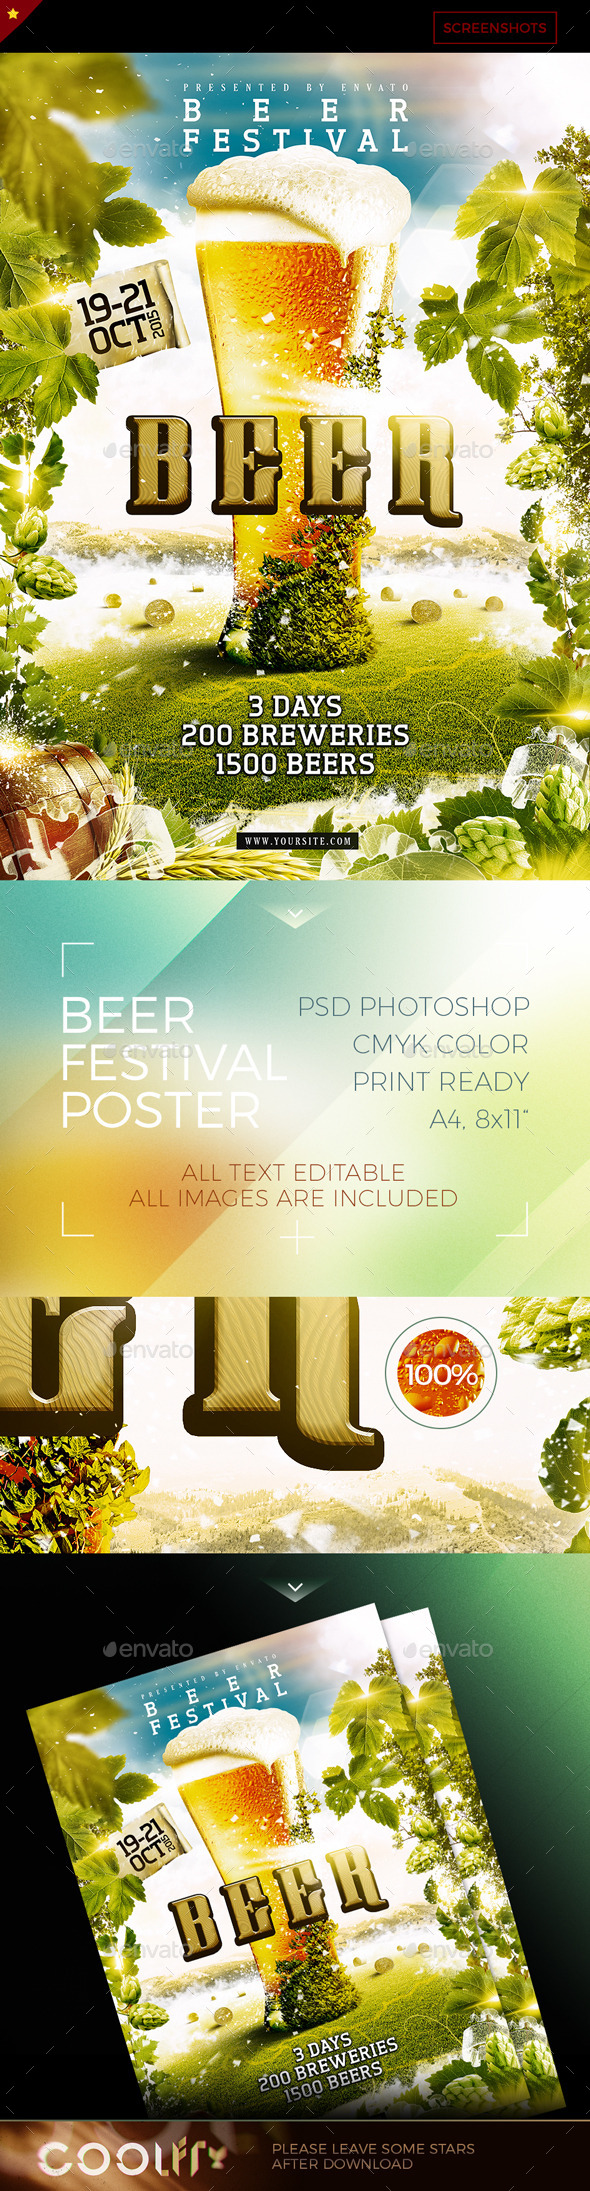 Beer Festival Poster - Holidays Events